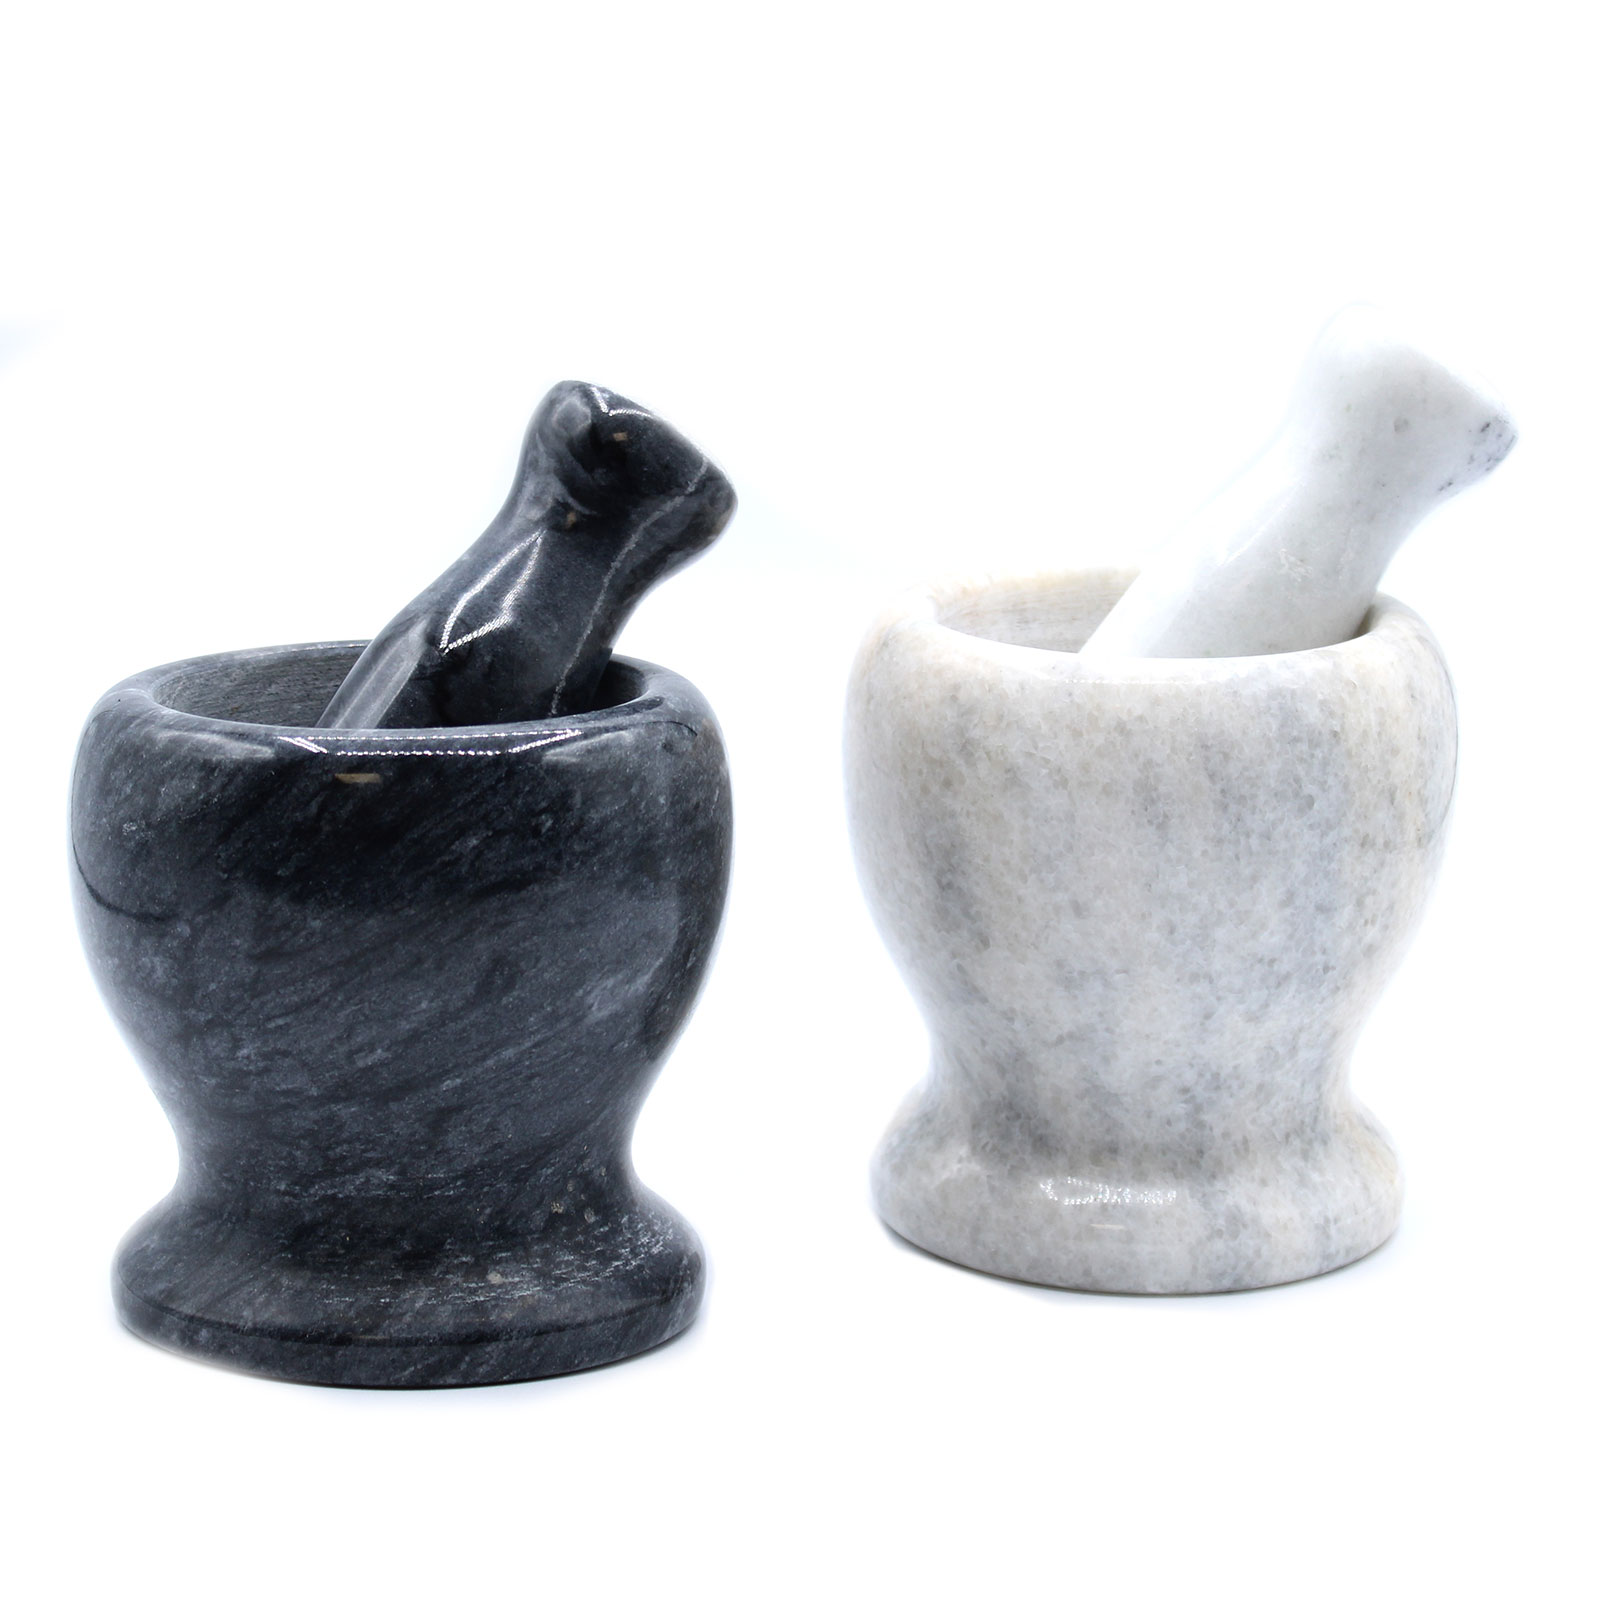 two marble pestle and mortar sets